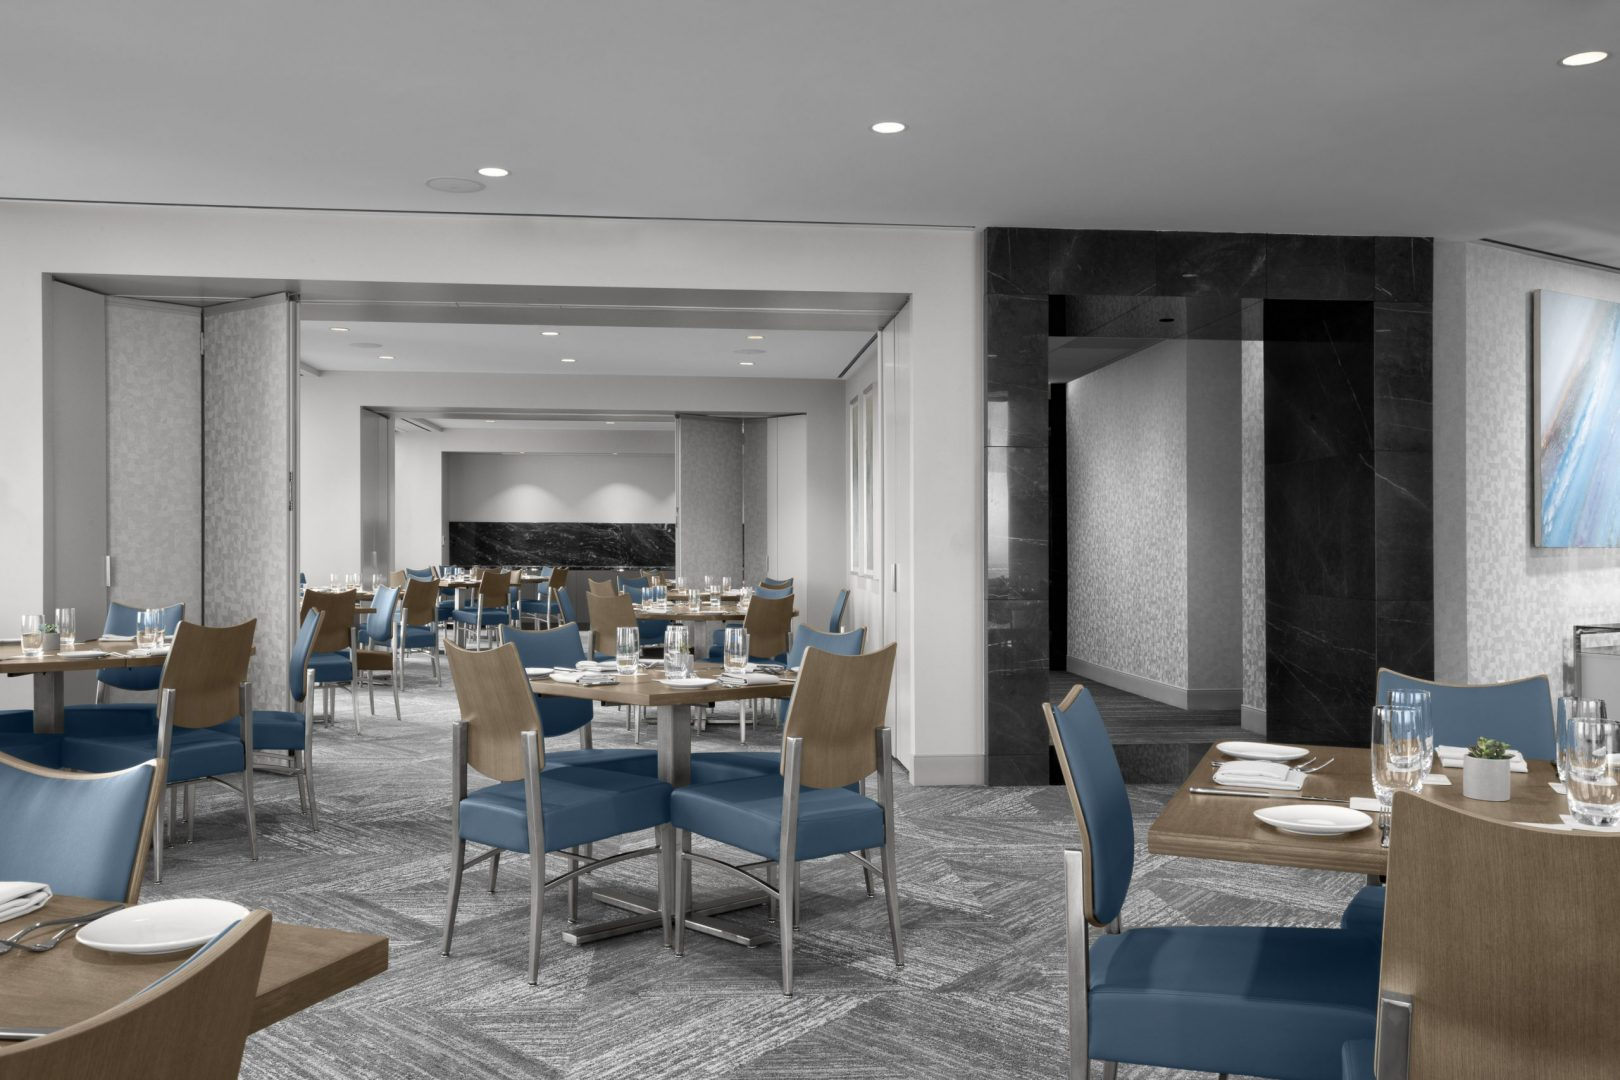 Corporate Hospitality Interior Design Restaurant Houston Strato550 Tables for four Gray Blue